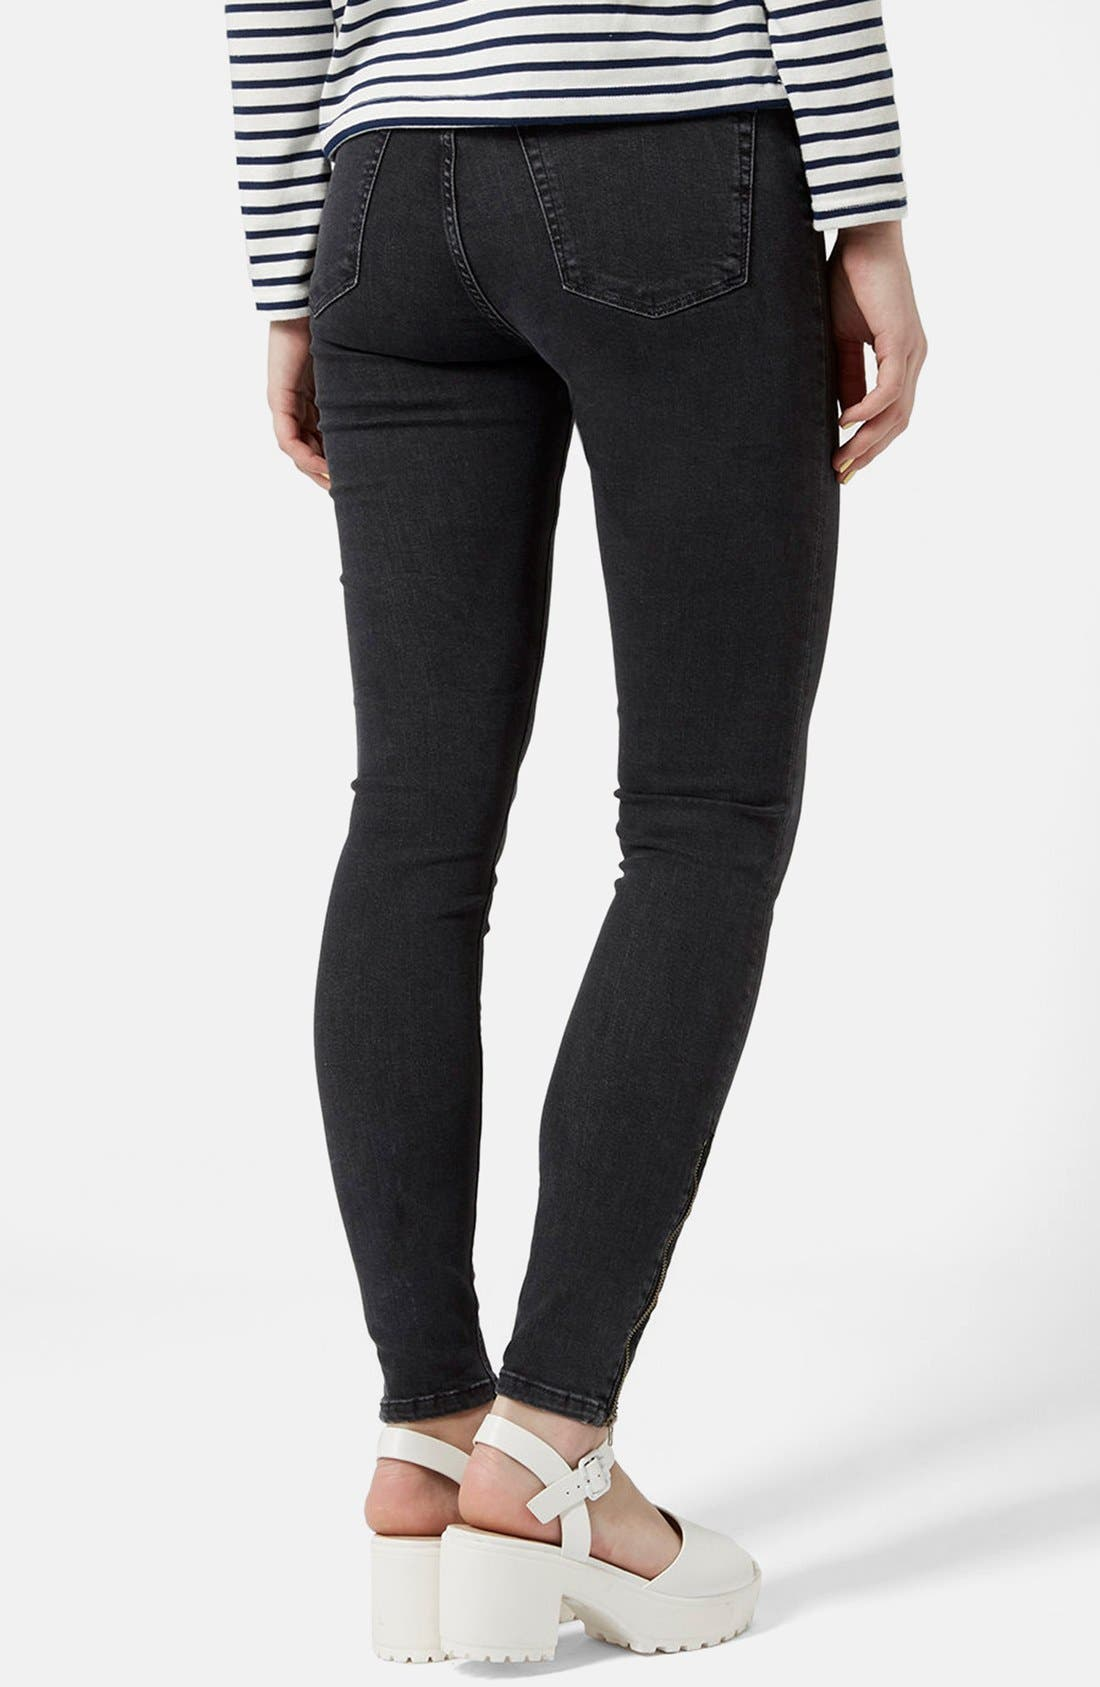 Moto 'Jamie' Zip Ankle Skinny Jeans,                             Alternate thumbnail 10, color,                             001